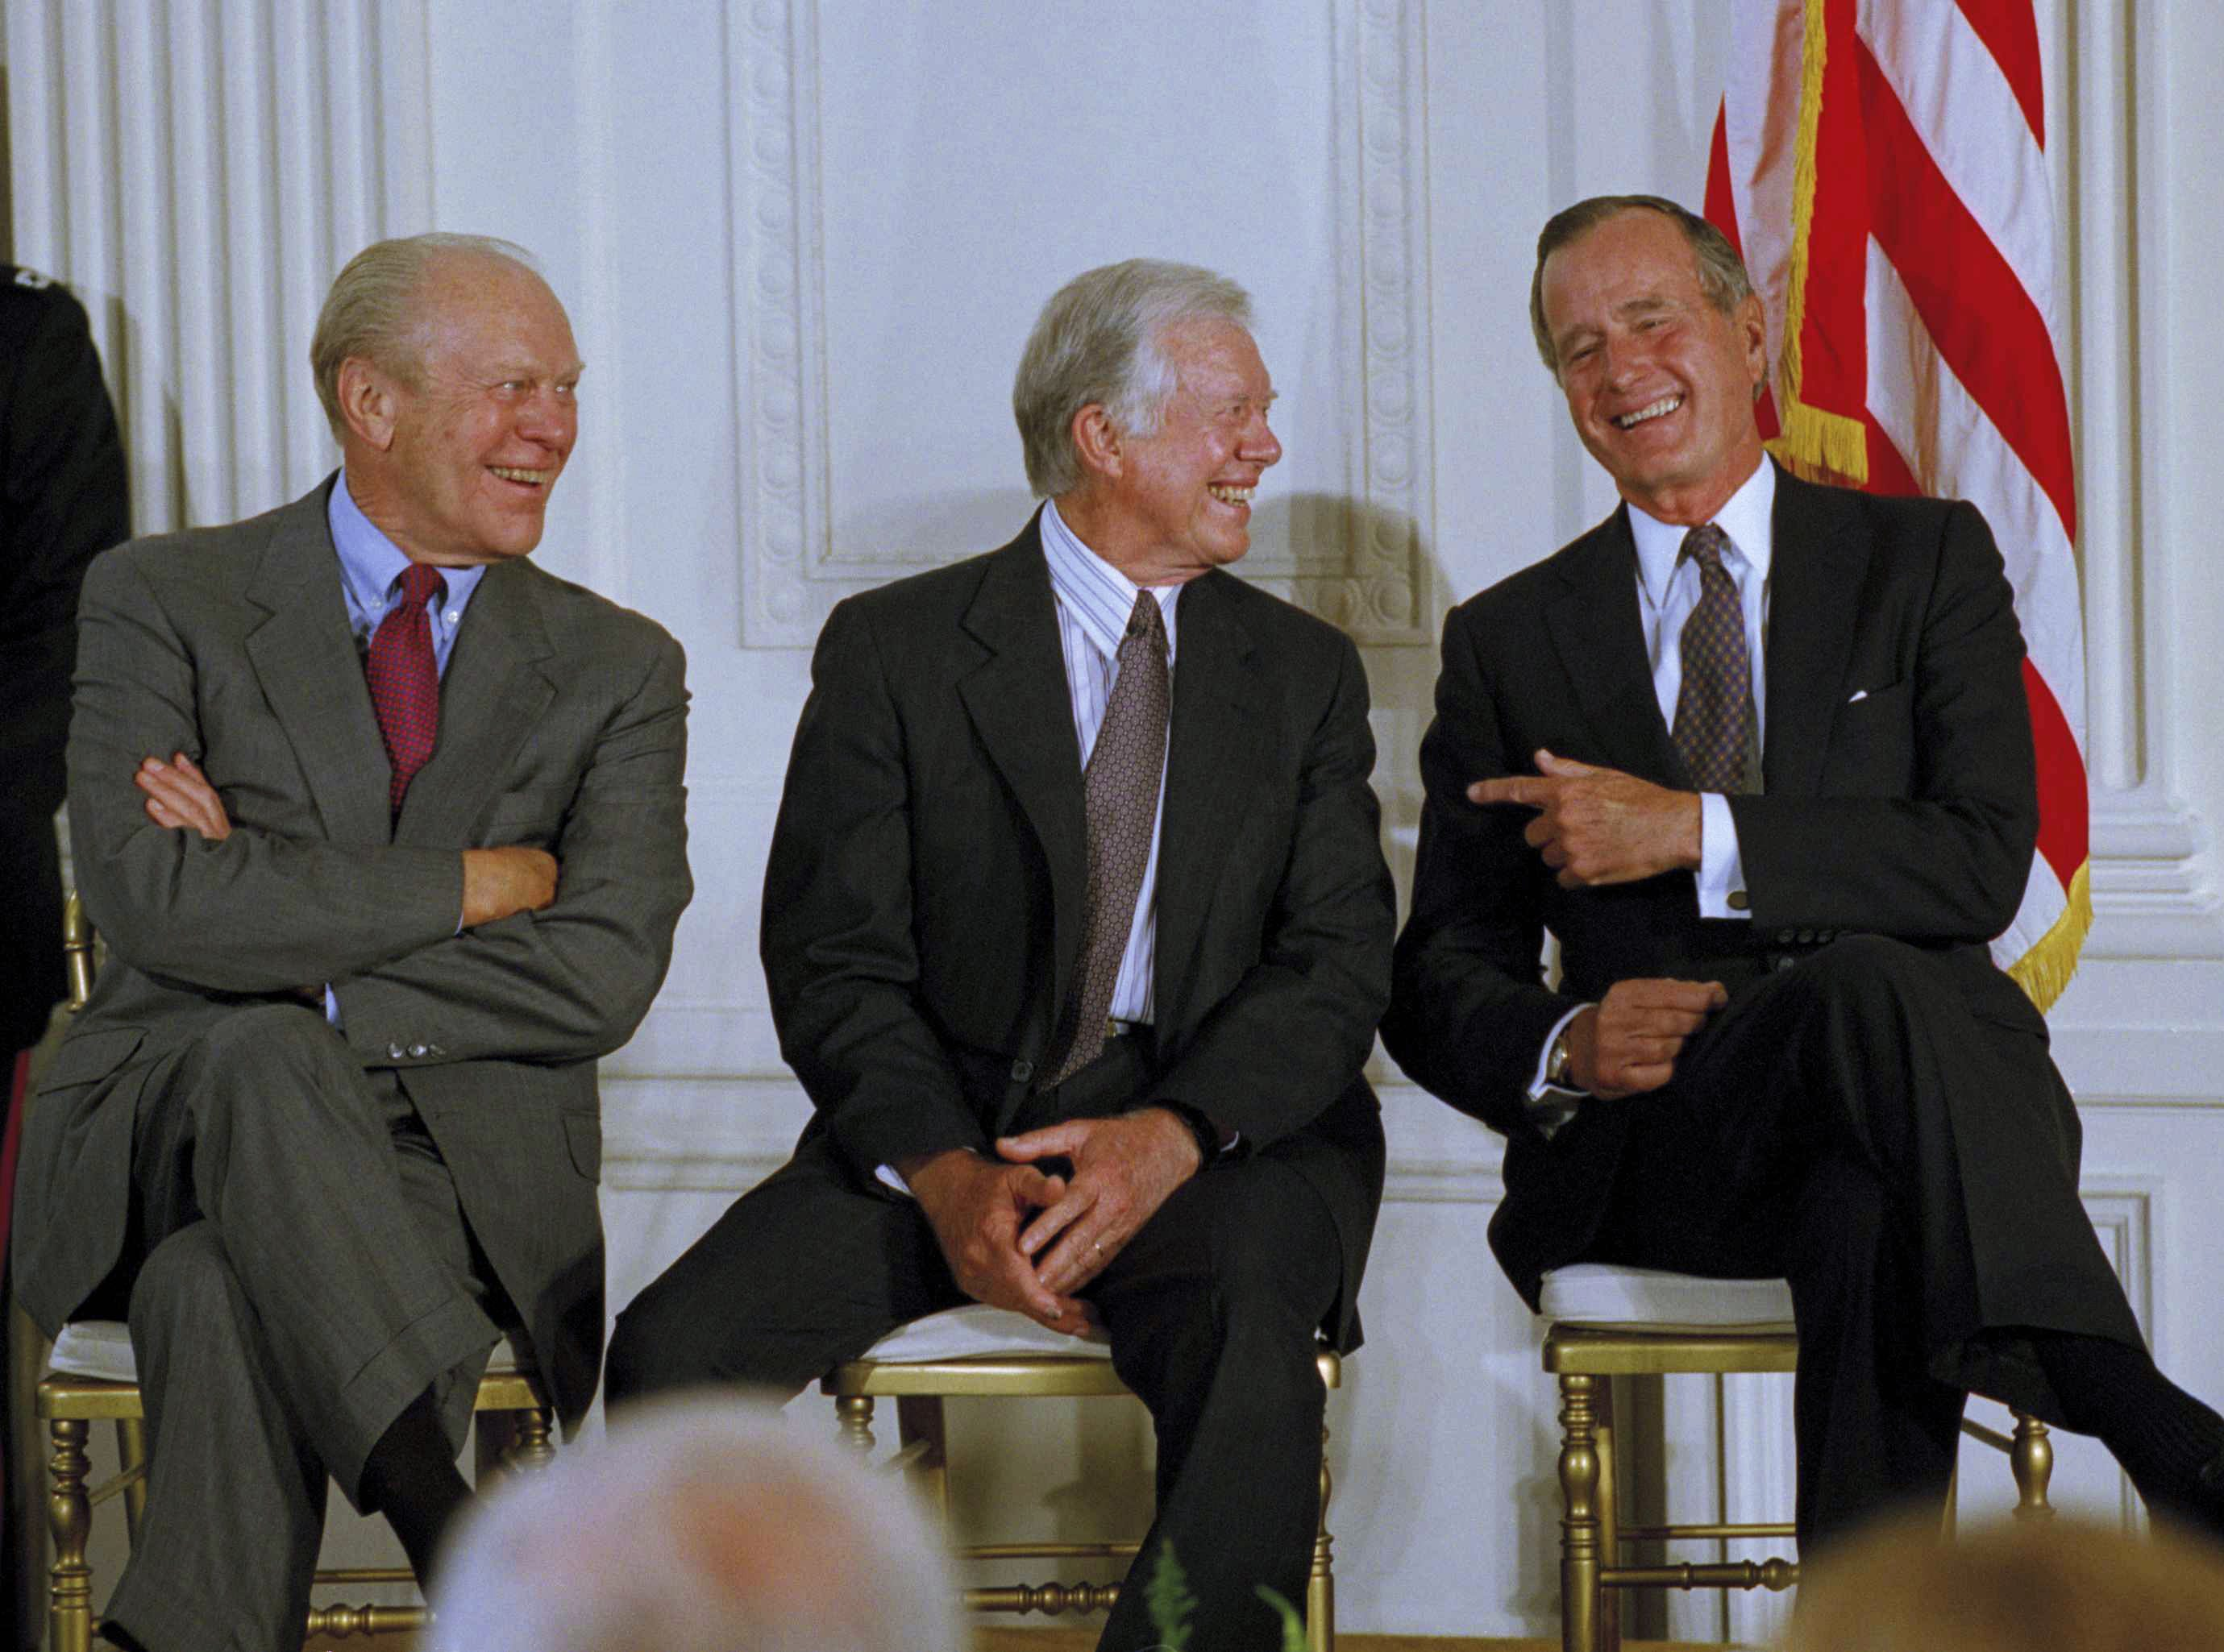 Former President George H.W. Bush, right, and former President  Jimmy Carter, center, share a laugh as former President Ford looks on at the White House in Washington Tuesday, Sept. 14, 1993.  The three former presidents joined President  Bill Clinton at a side deal signing of the three-nation North American Free Trade Agreement. (AP Photo/Ron Edmonds)